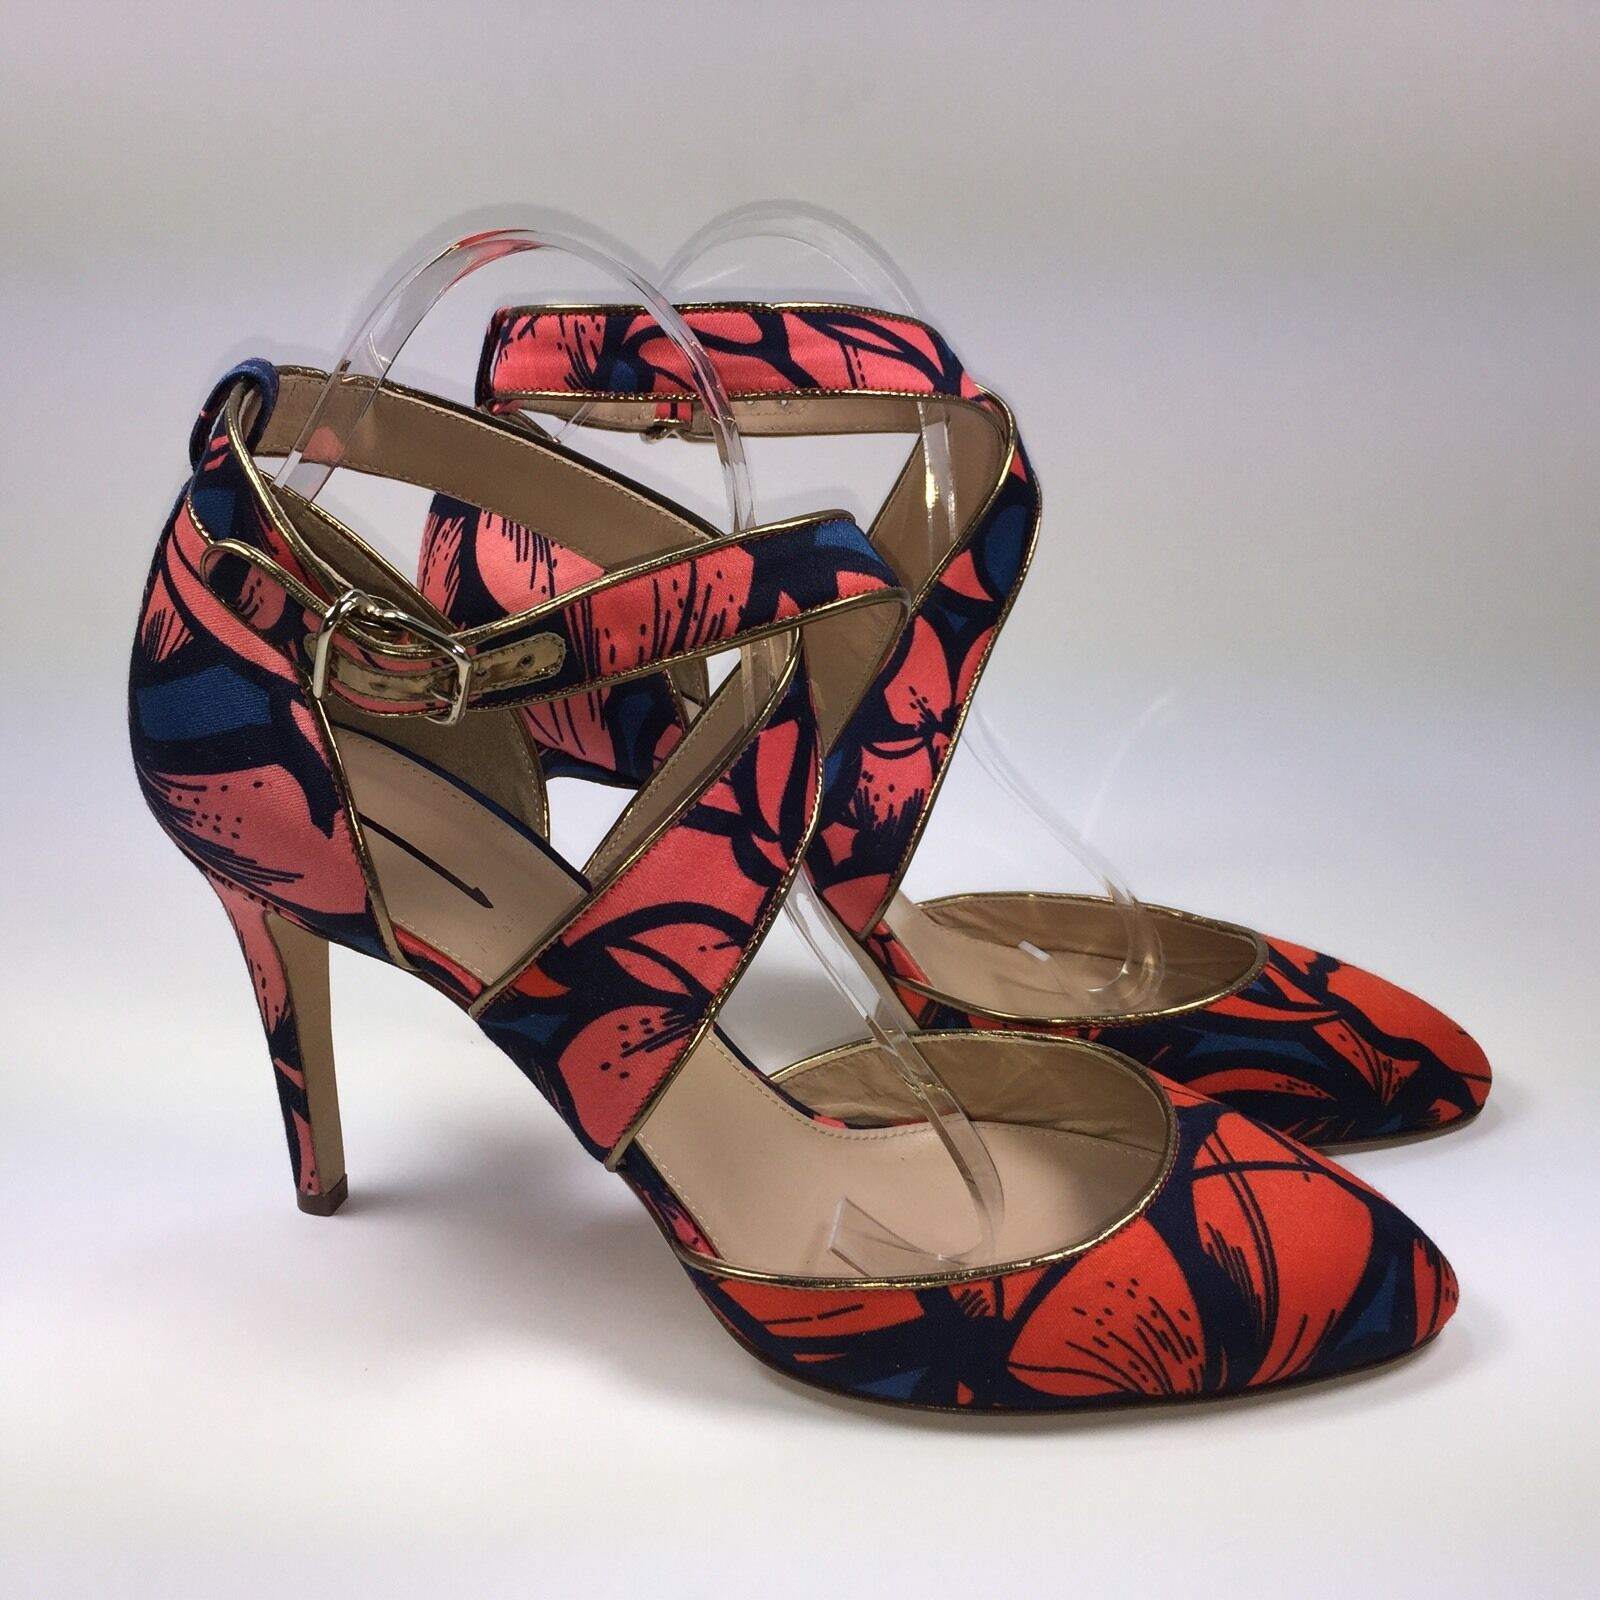 J.Crew J.Crew J.Crew Collection Sloane Printed Crisscross Pumps Sz.9.5  298 f94c28